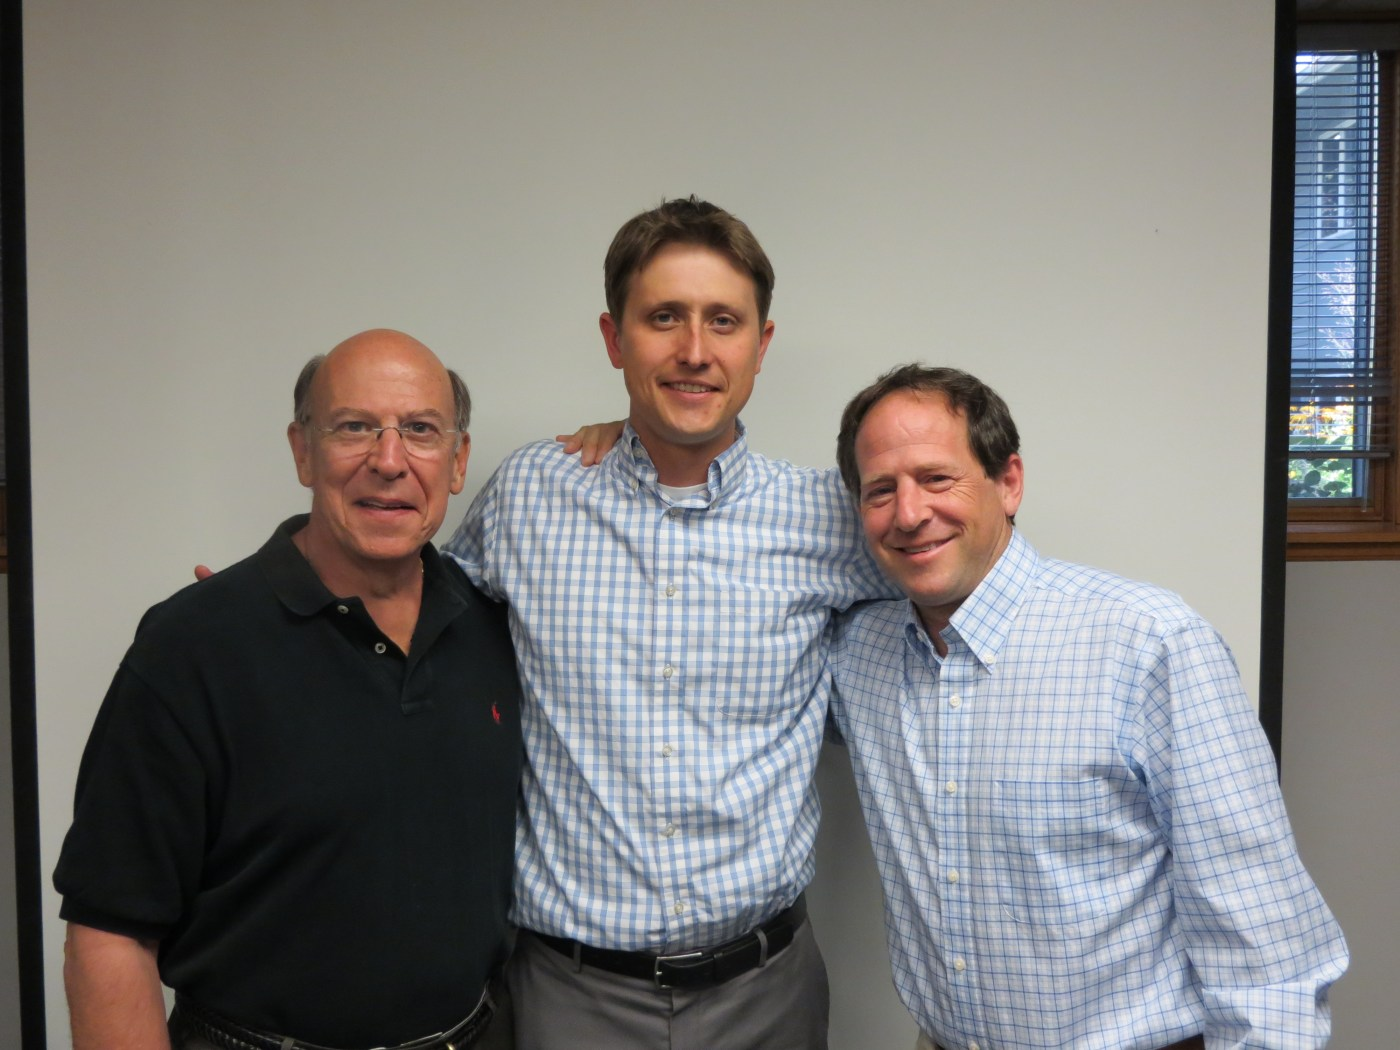 Drs. Versman, Heller, and Beckman